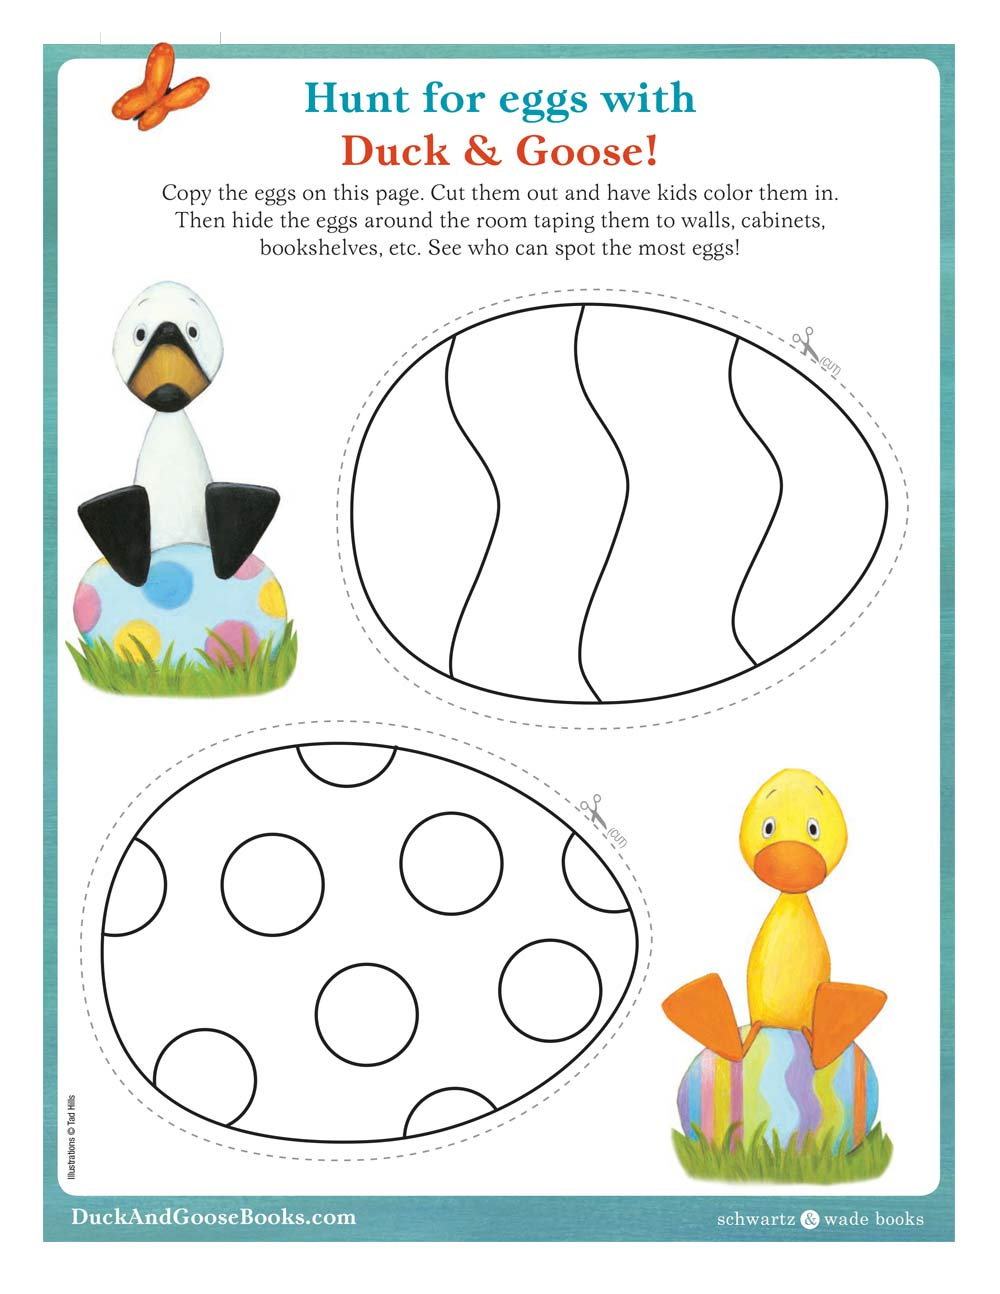 Duck and Goose Easter Egg Hunt Activity